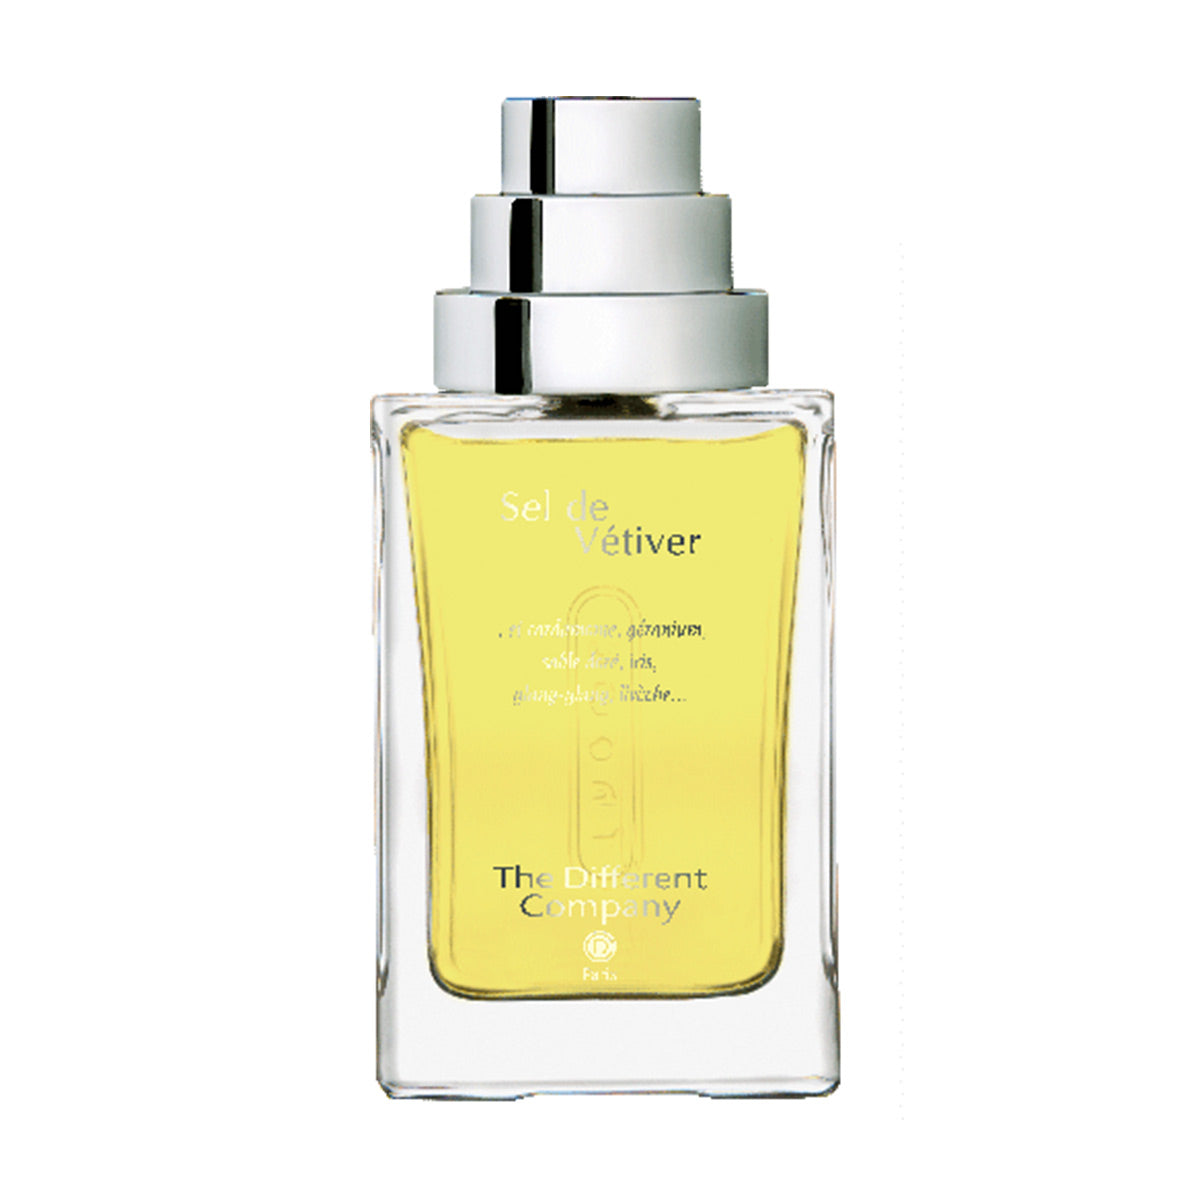 Niche Fragrance for Summer | The Different Company Sel de Vetiver Eau de Parfum